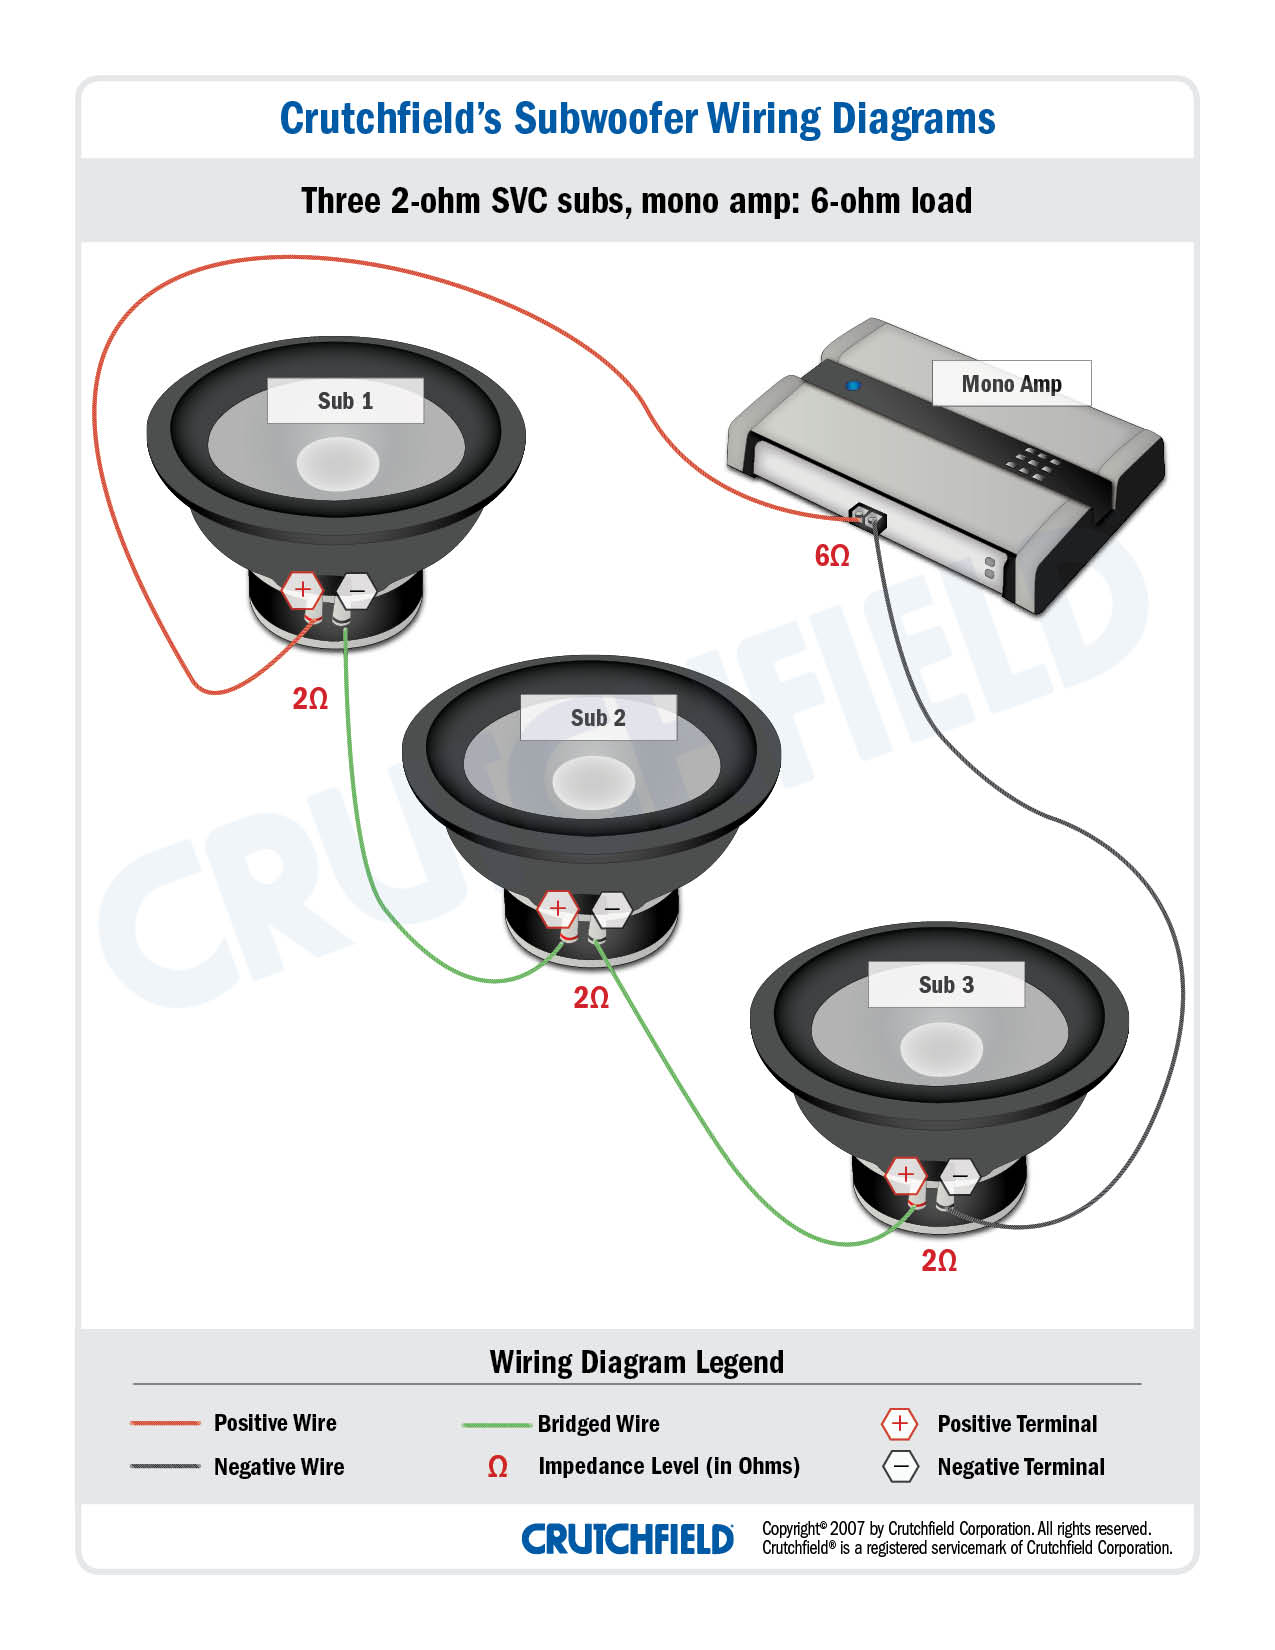 subwoofer wiring diagrams \u2014 how to wire your subs Logitech Subwoofer and Speaker Circuit Board Wiring Diagram this diagram shows how three svc subs get wired in series in your case, on the diagram captions, change the 2s to 4s and the 6 to a 12